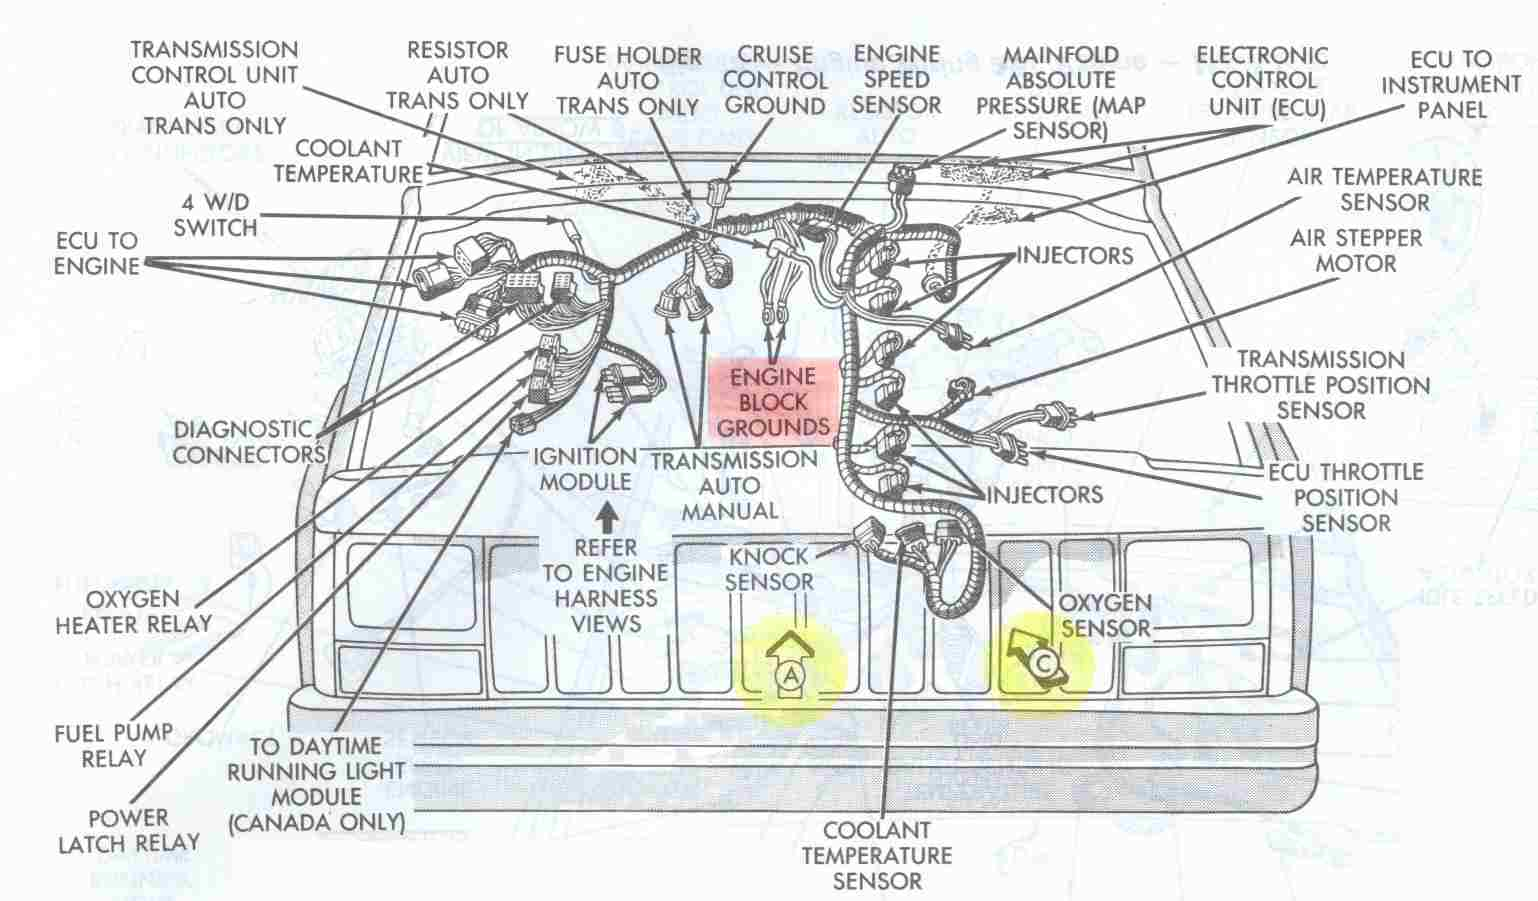 Electrical_Engine_Ground_Points_Overview jeep cherokee electrical diagnosing erratic behavior of engine 2000 jeep xj wire diagram at soozxer.org